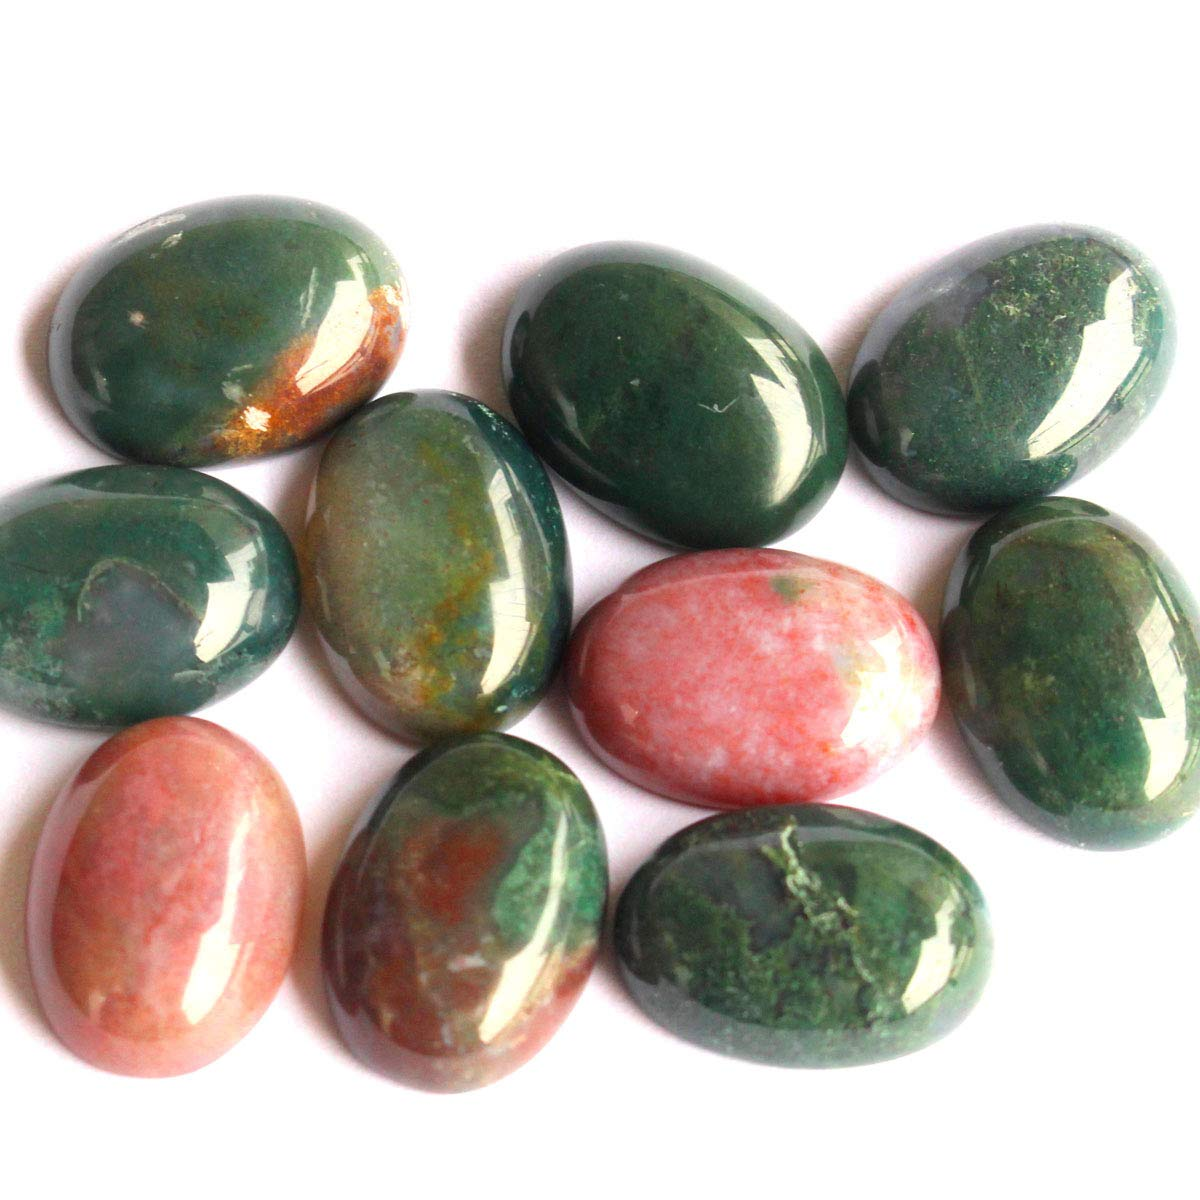 10pcs Stone Natural Real Gemstones Cabochons for DIY Jewelry Making Beads Cabs (Indian Agate, Oval 12x16mm)